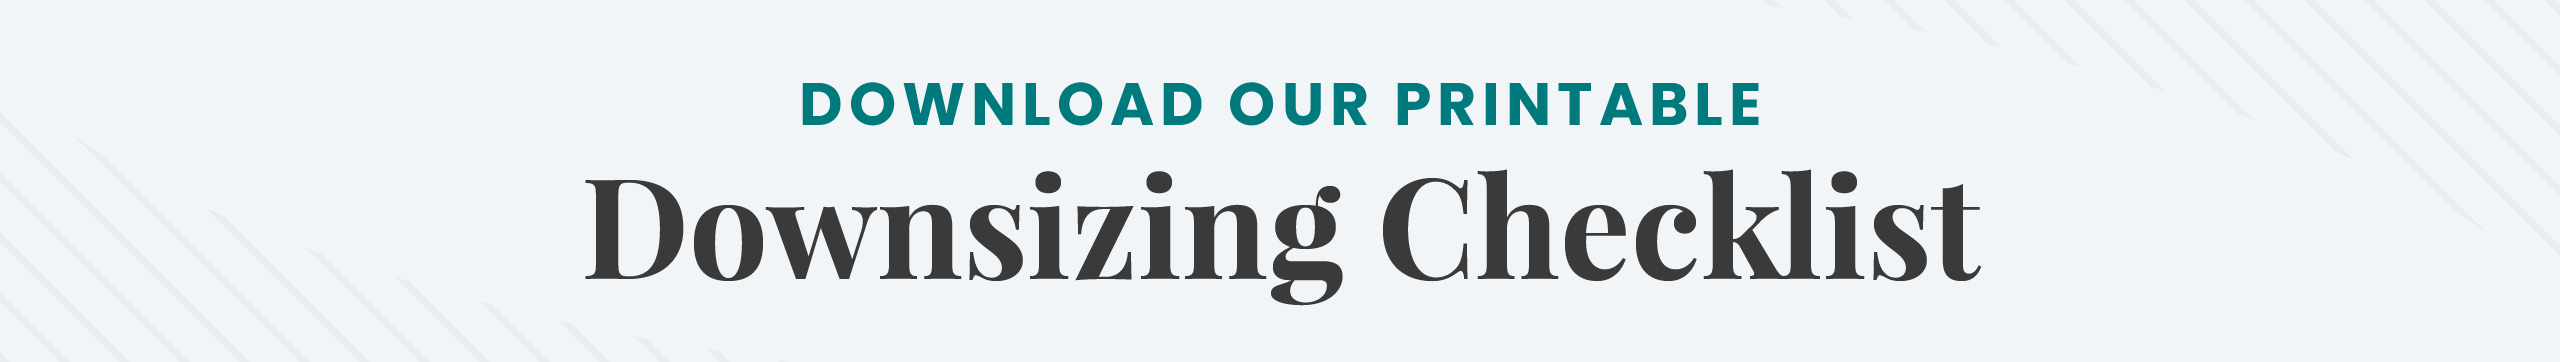 Download our Downsizing Checklist